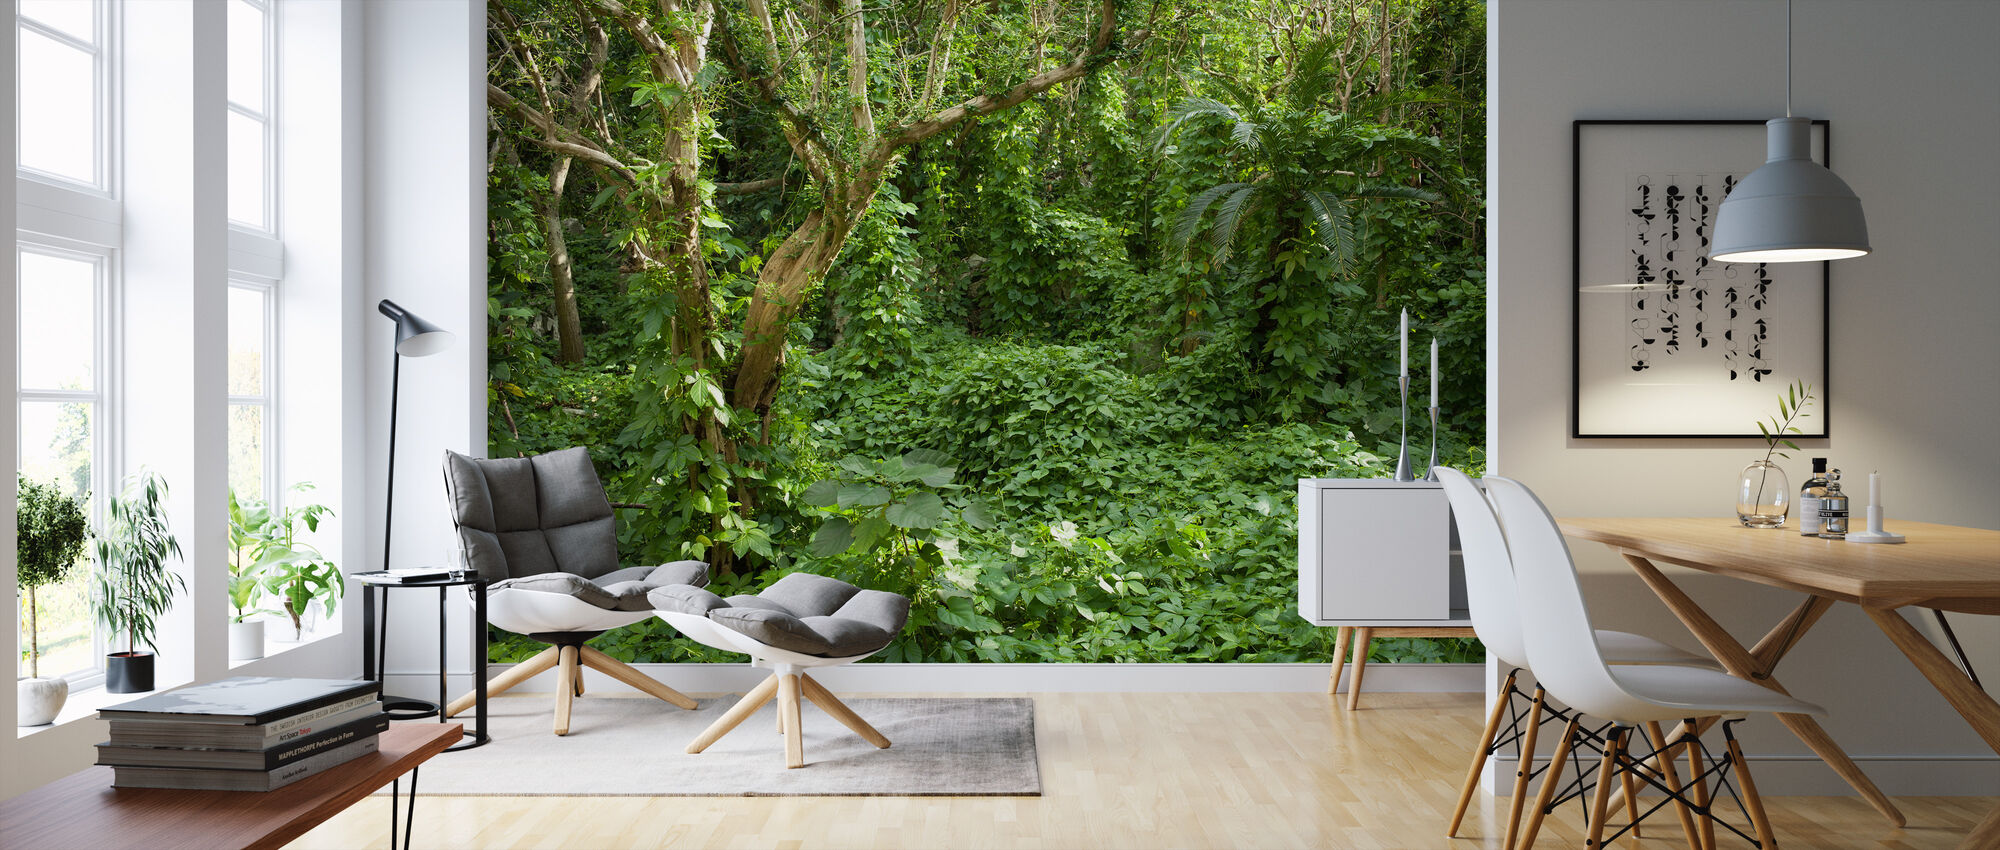 Ancient Ruins Covered by Tropical Jungle - Wallpaper - Living Room